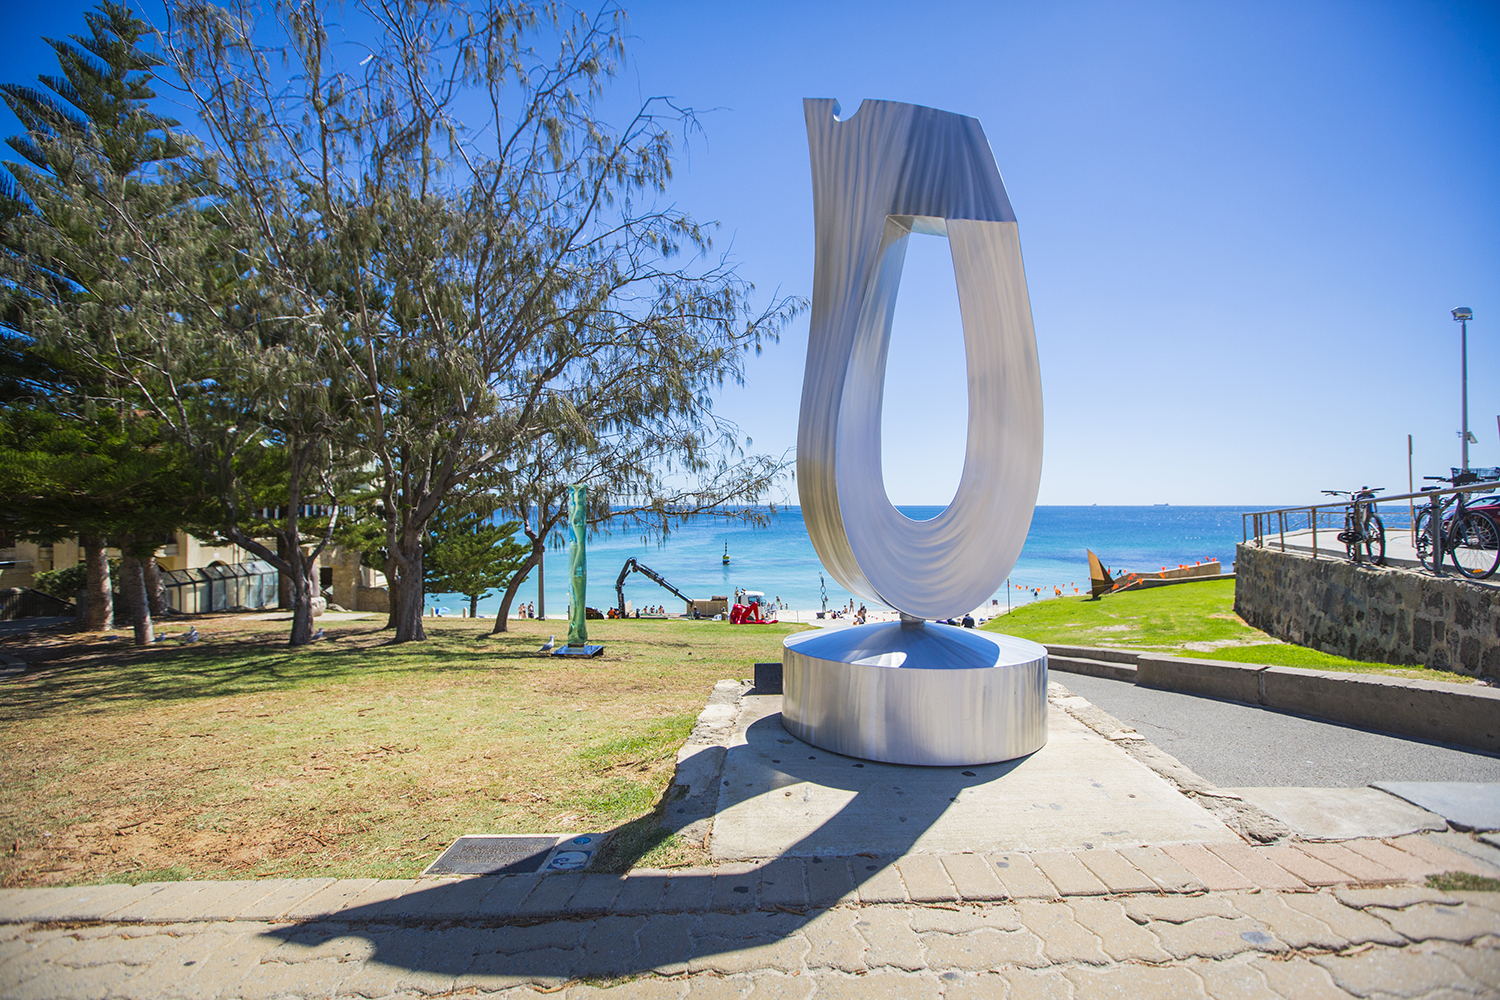 R.M. (Ron) Gomoc (WA), cycle of life, Sculpture by the Sea, Cottesloe 2015. Photo Jessica Wyld.